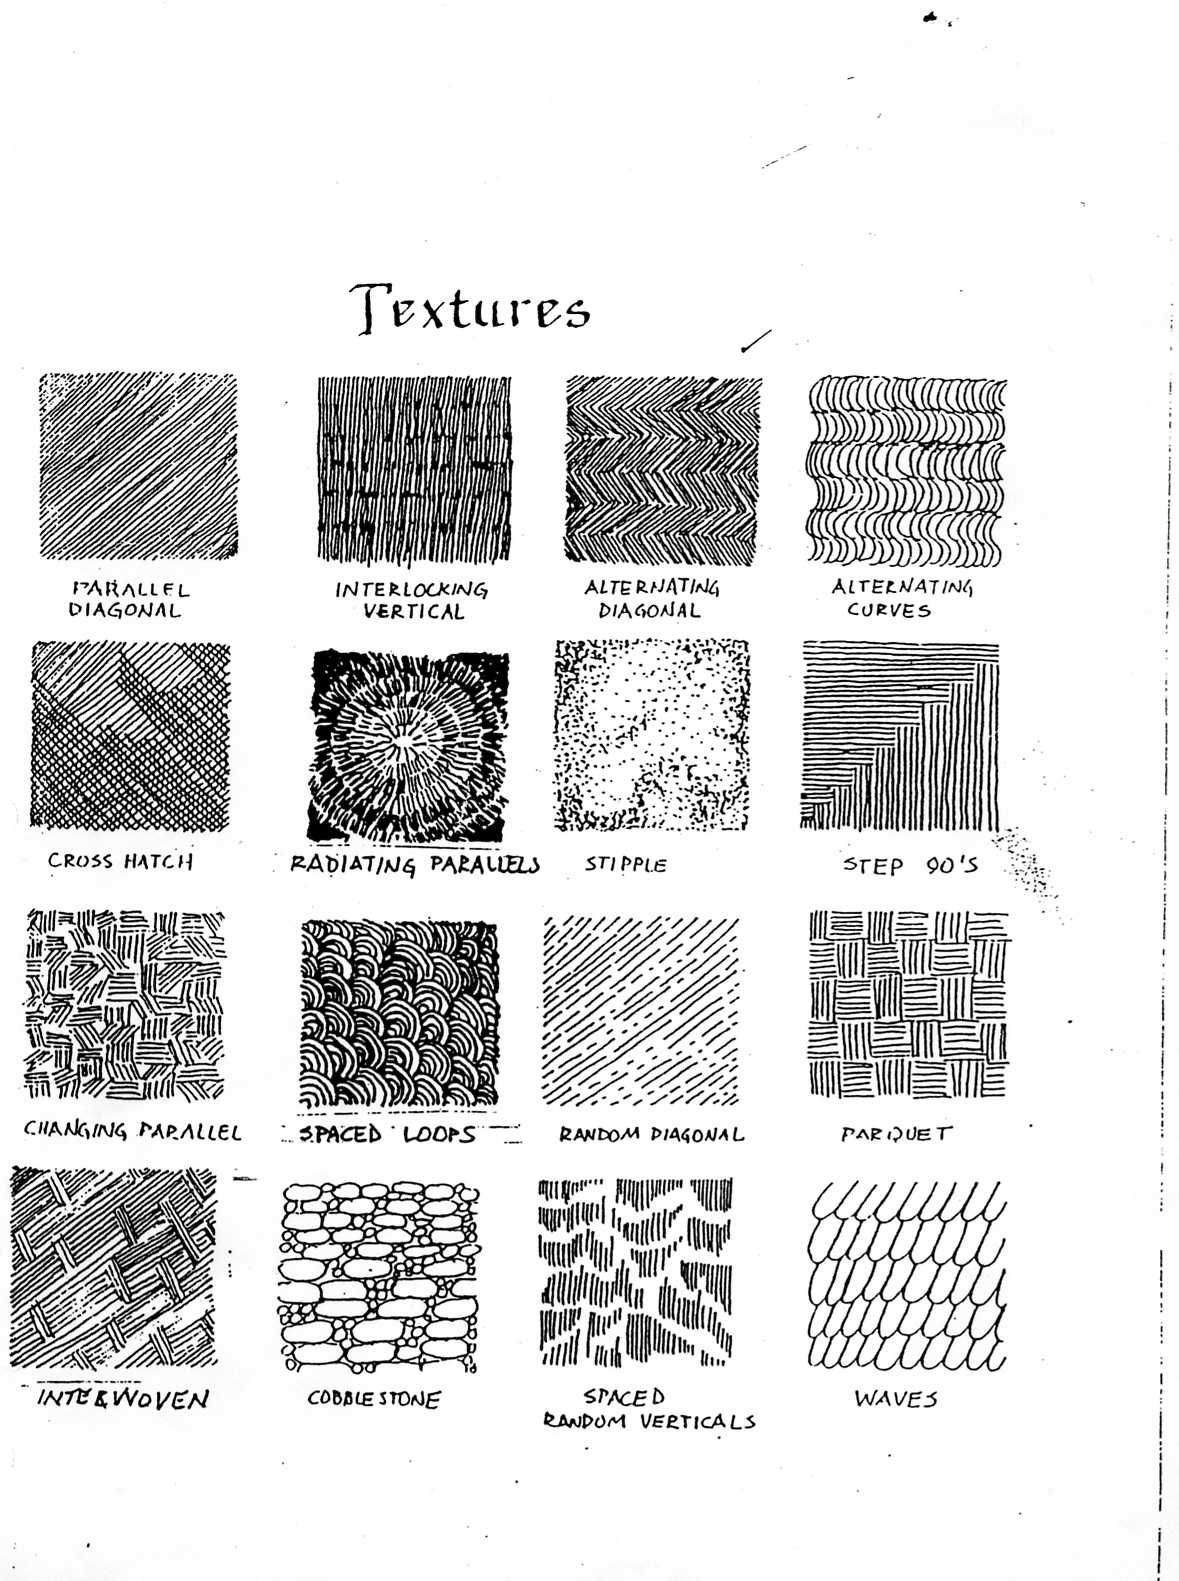 Drawing Using Textures